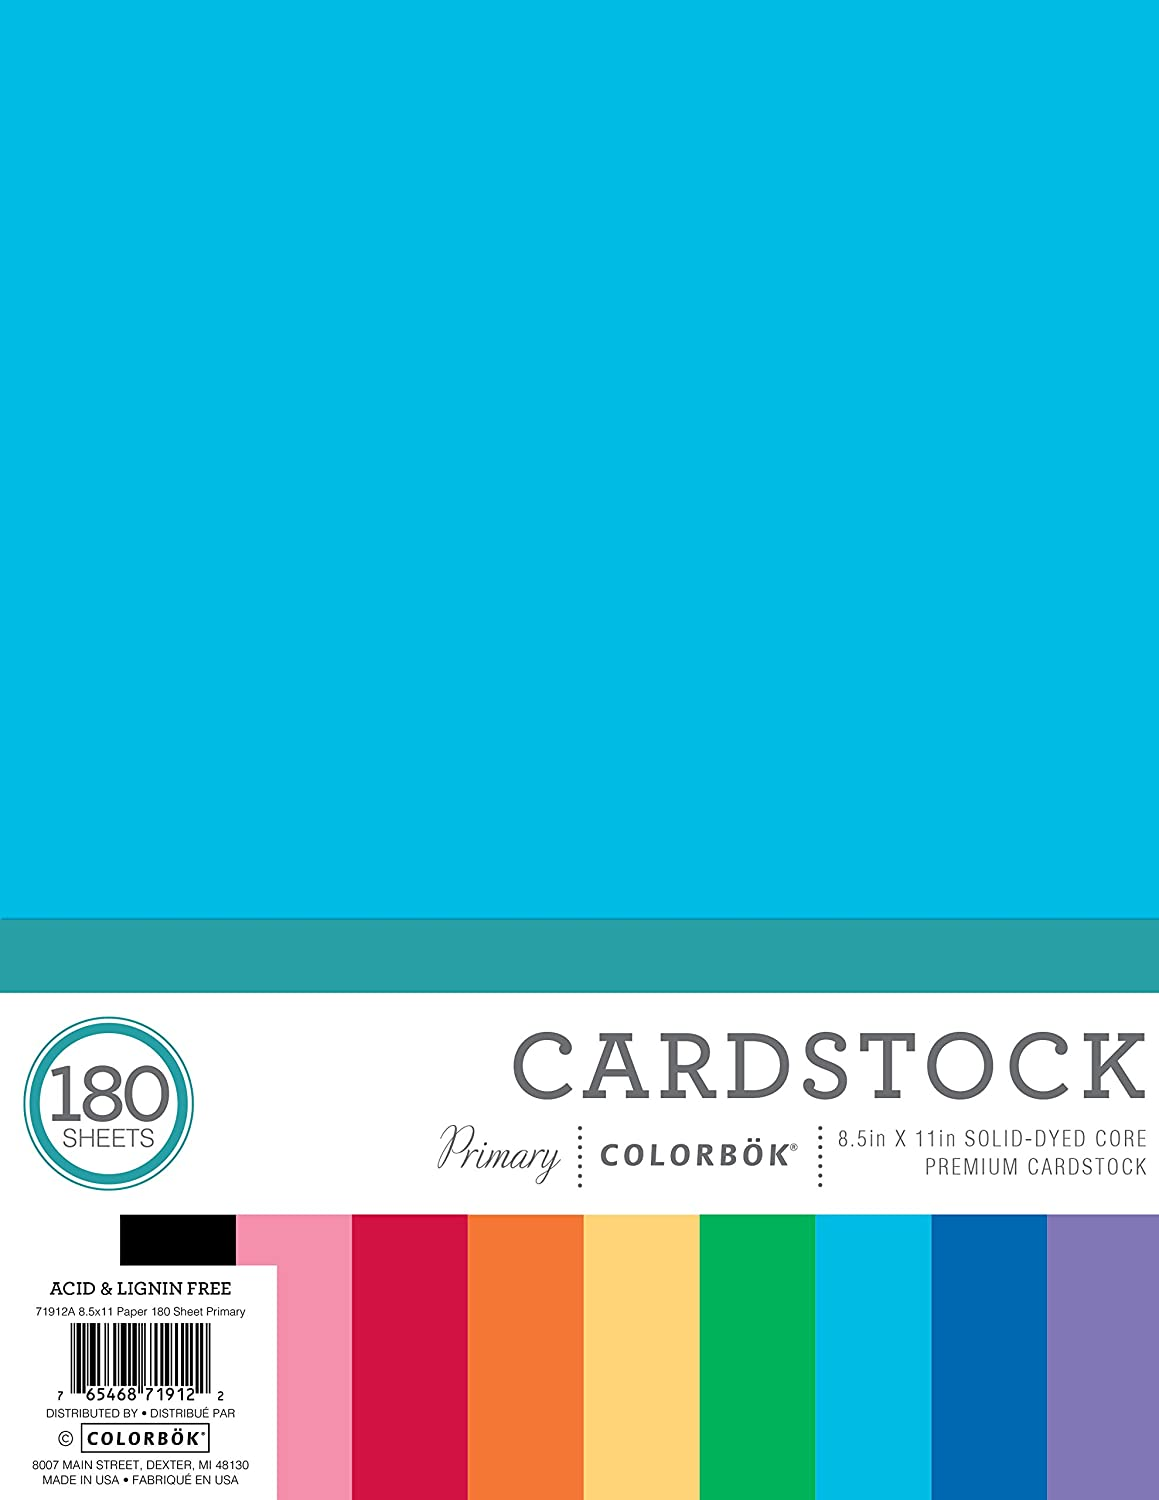 Free shipping anywhere in the nation Seasonal Wrap Introduction Colorbok Primary Cardstock Pad Mega Paper 180 x 8.5